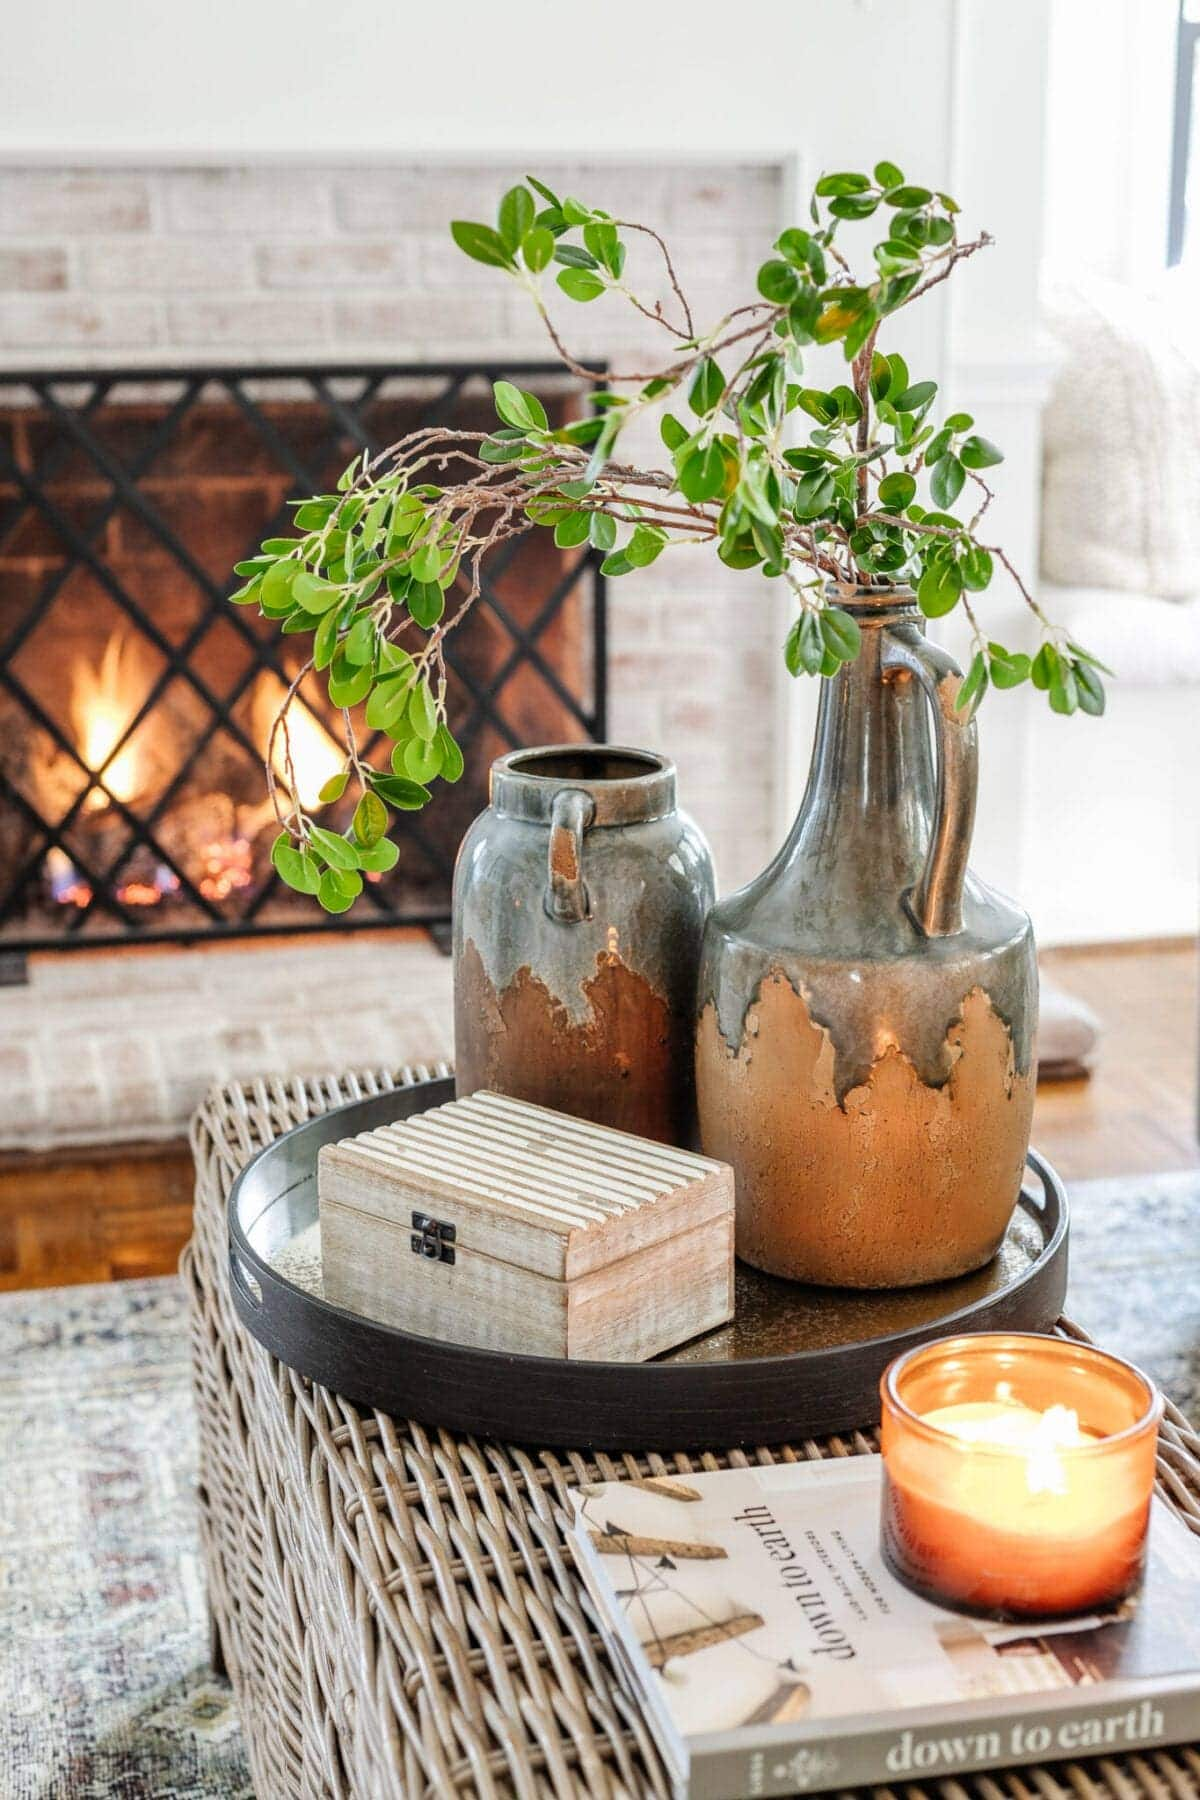 Winter Decor on a Coffee Table